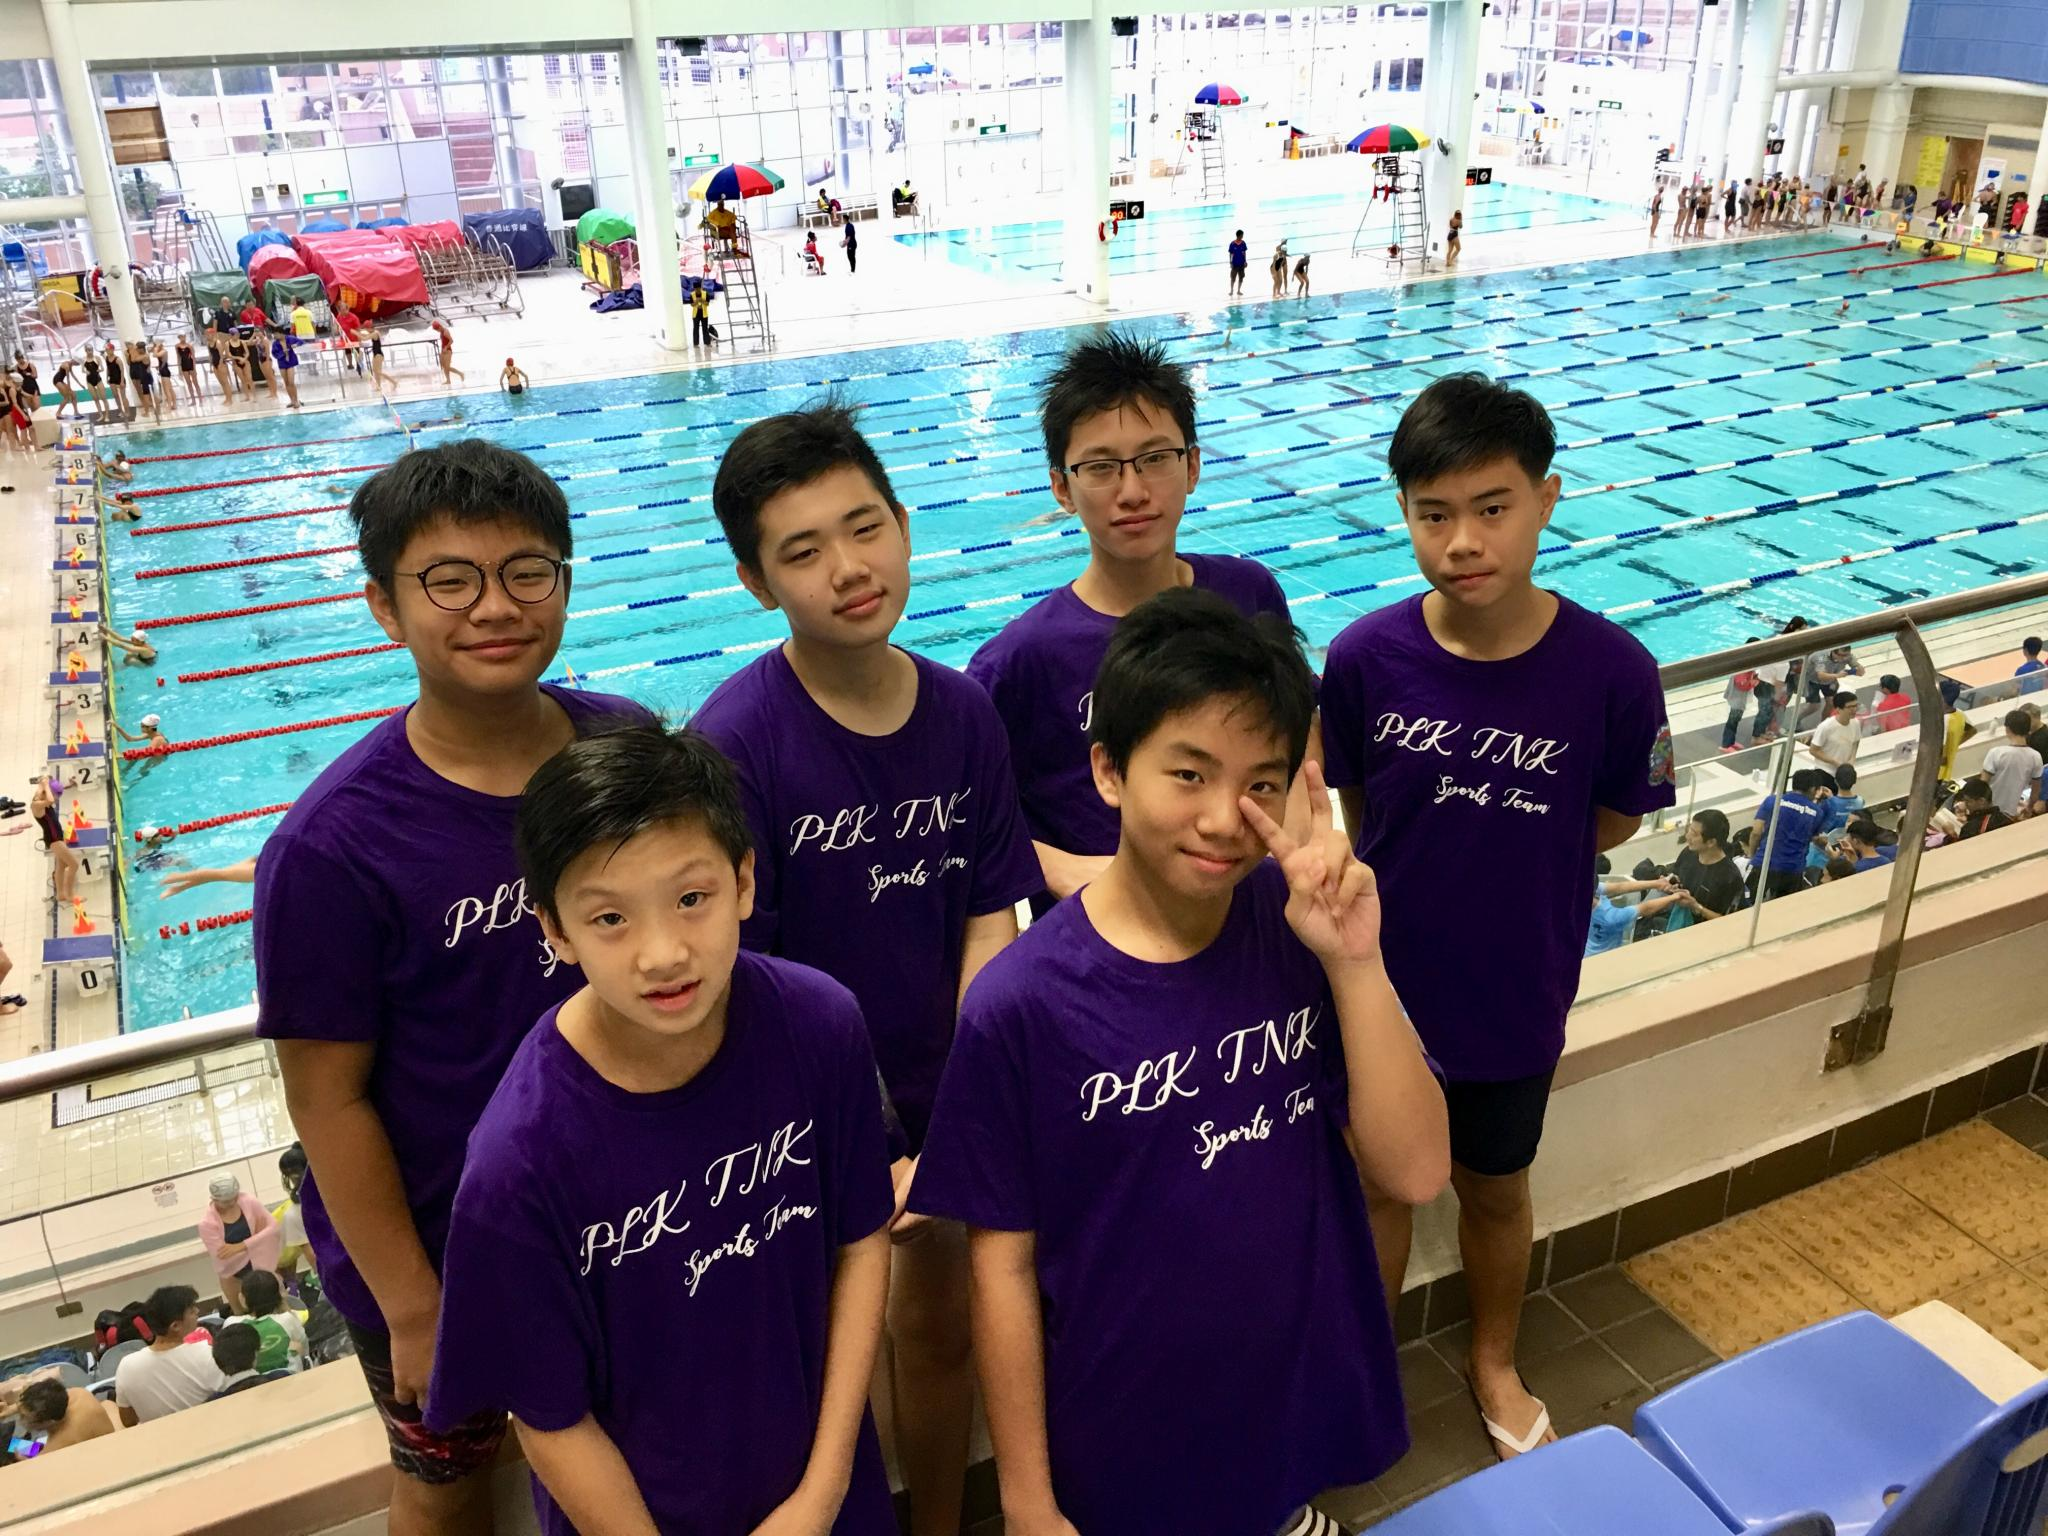 School events w tnkjsc Tong high school swimming pool